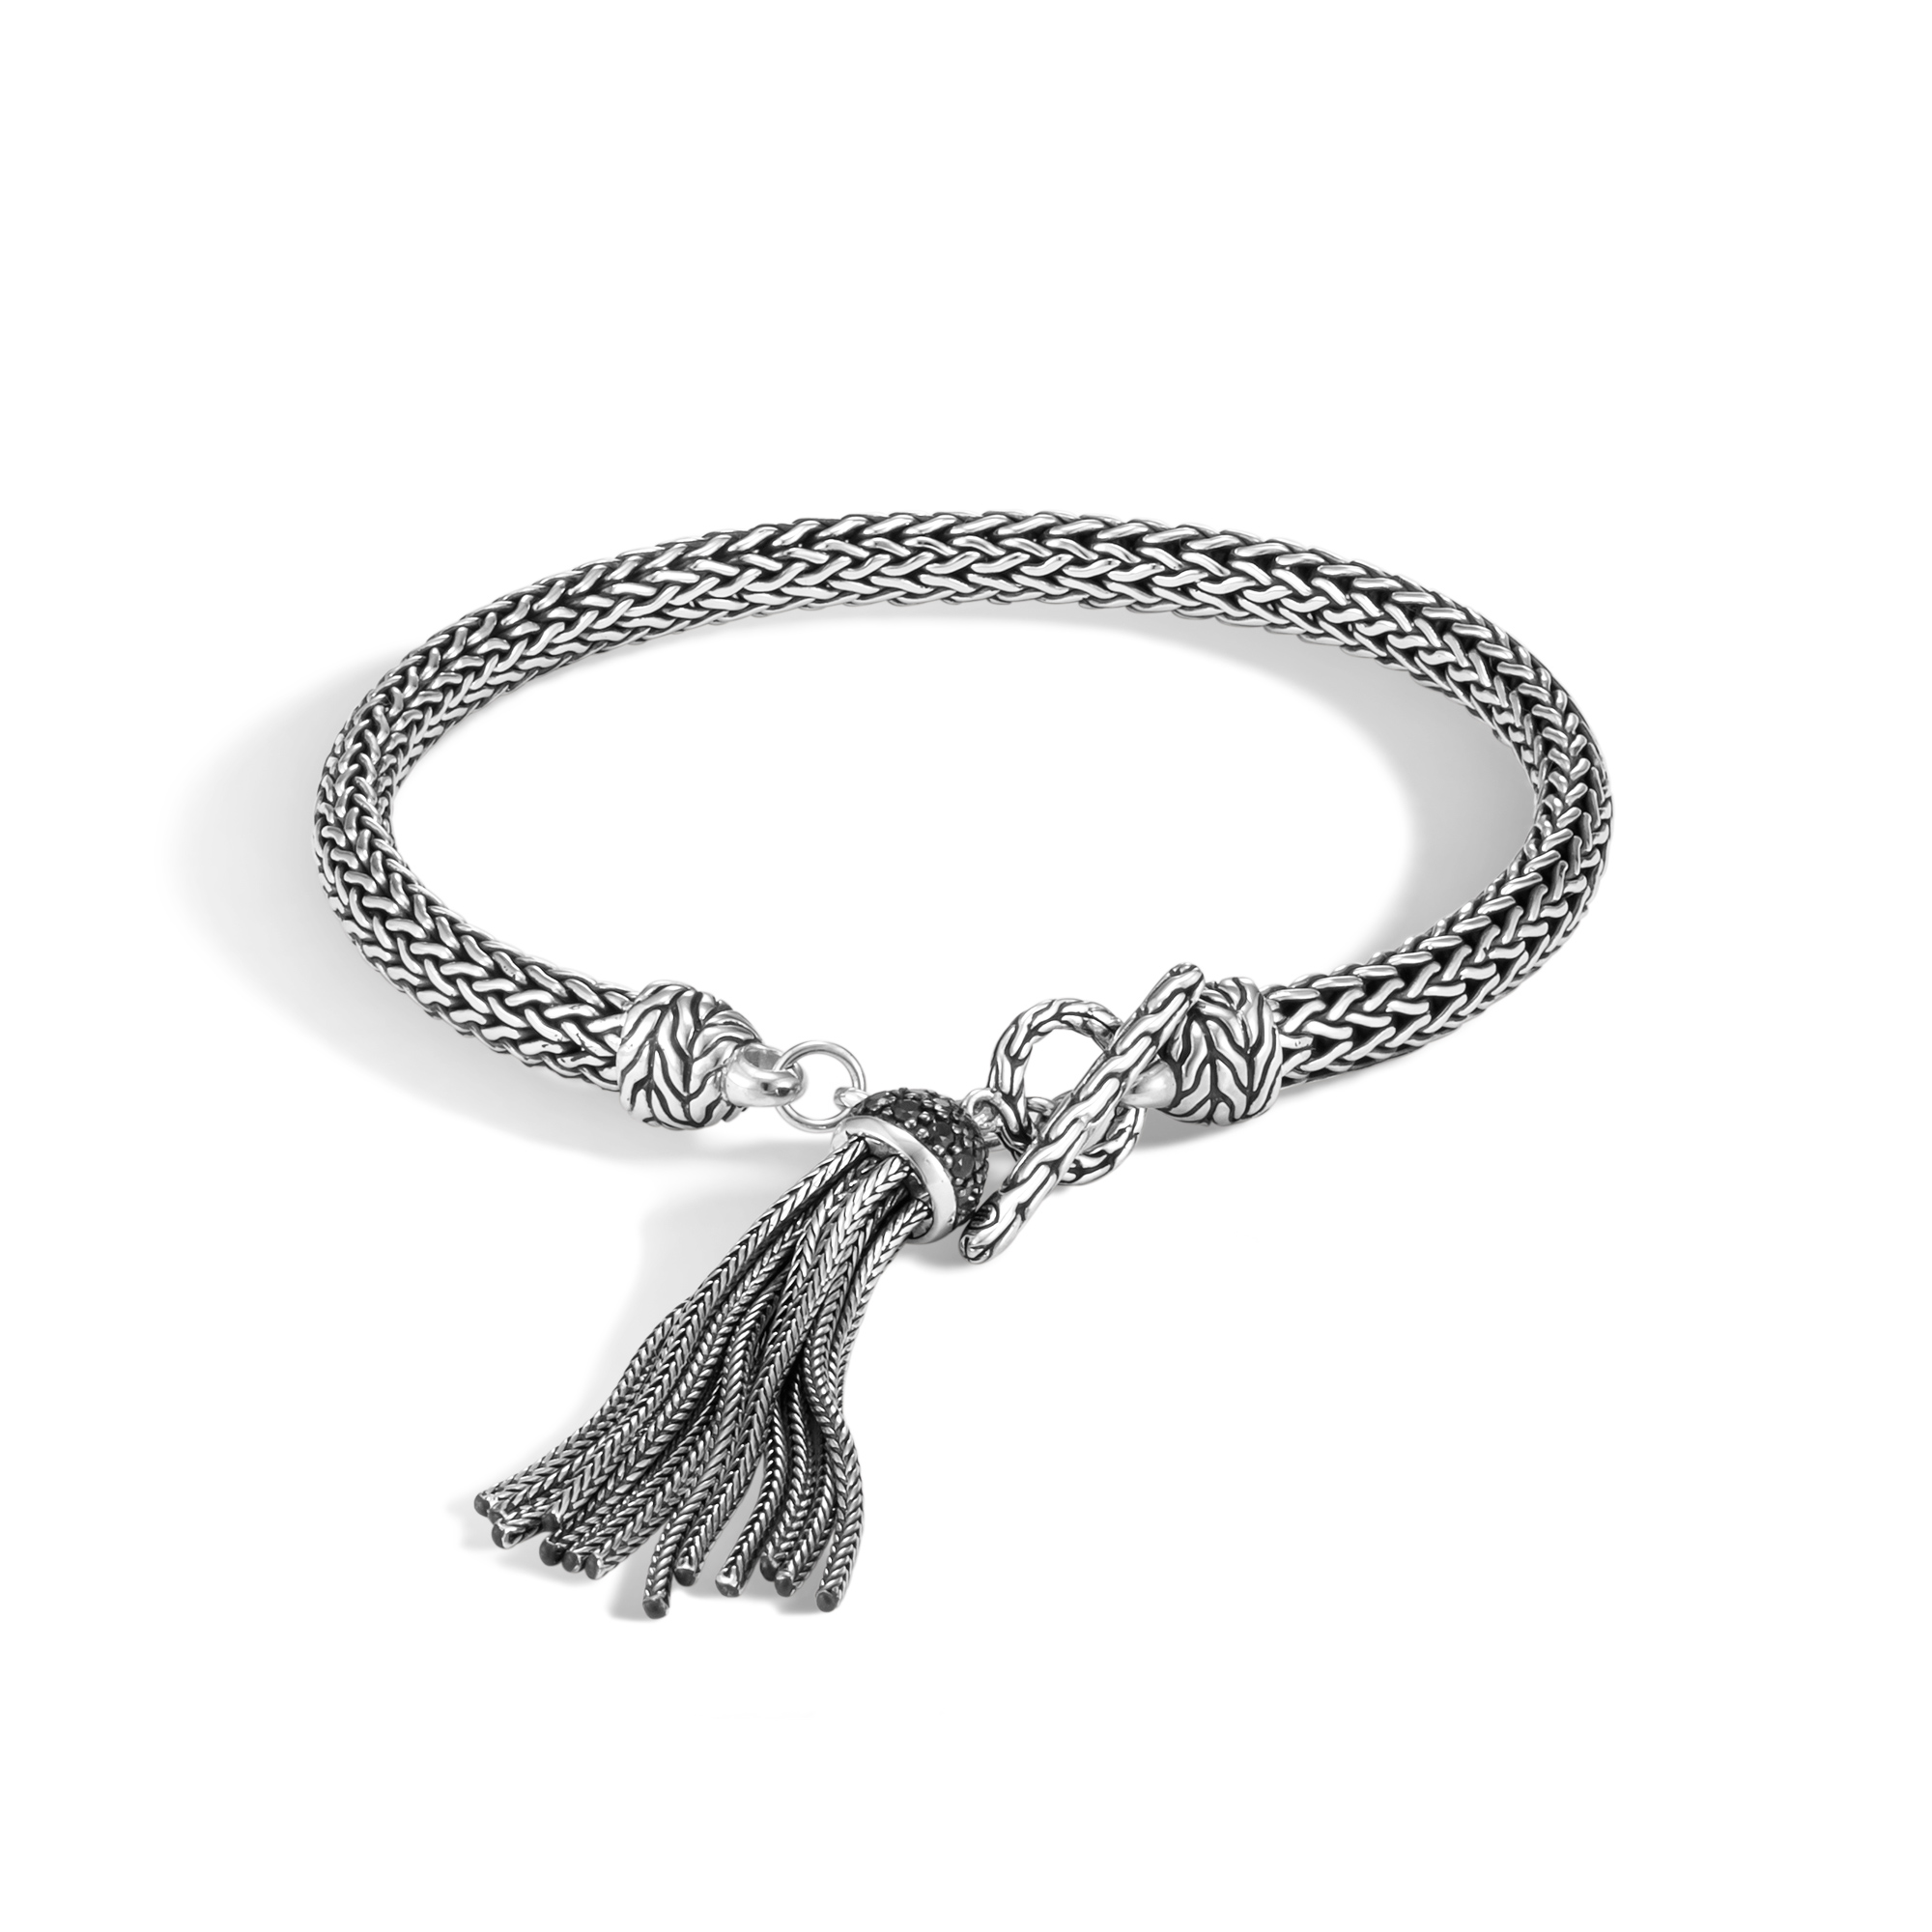 Classic Chain 5MM Tassel Charm Bracelet, Silver with Gemstone, Black Spinel, large